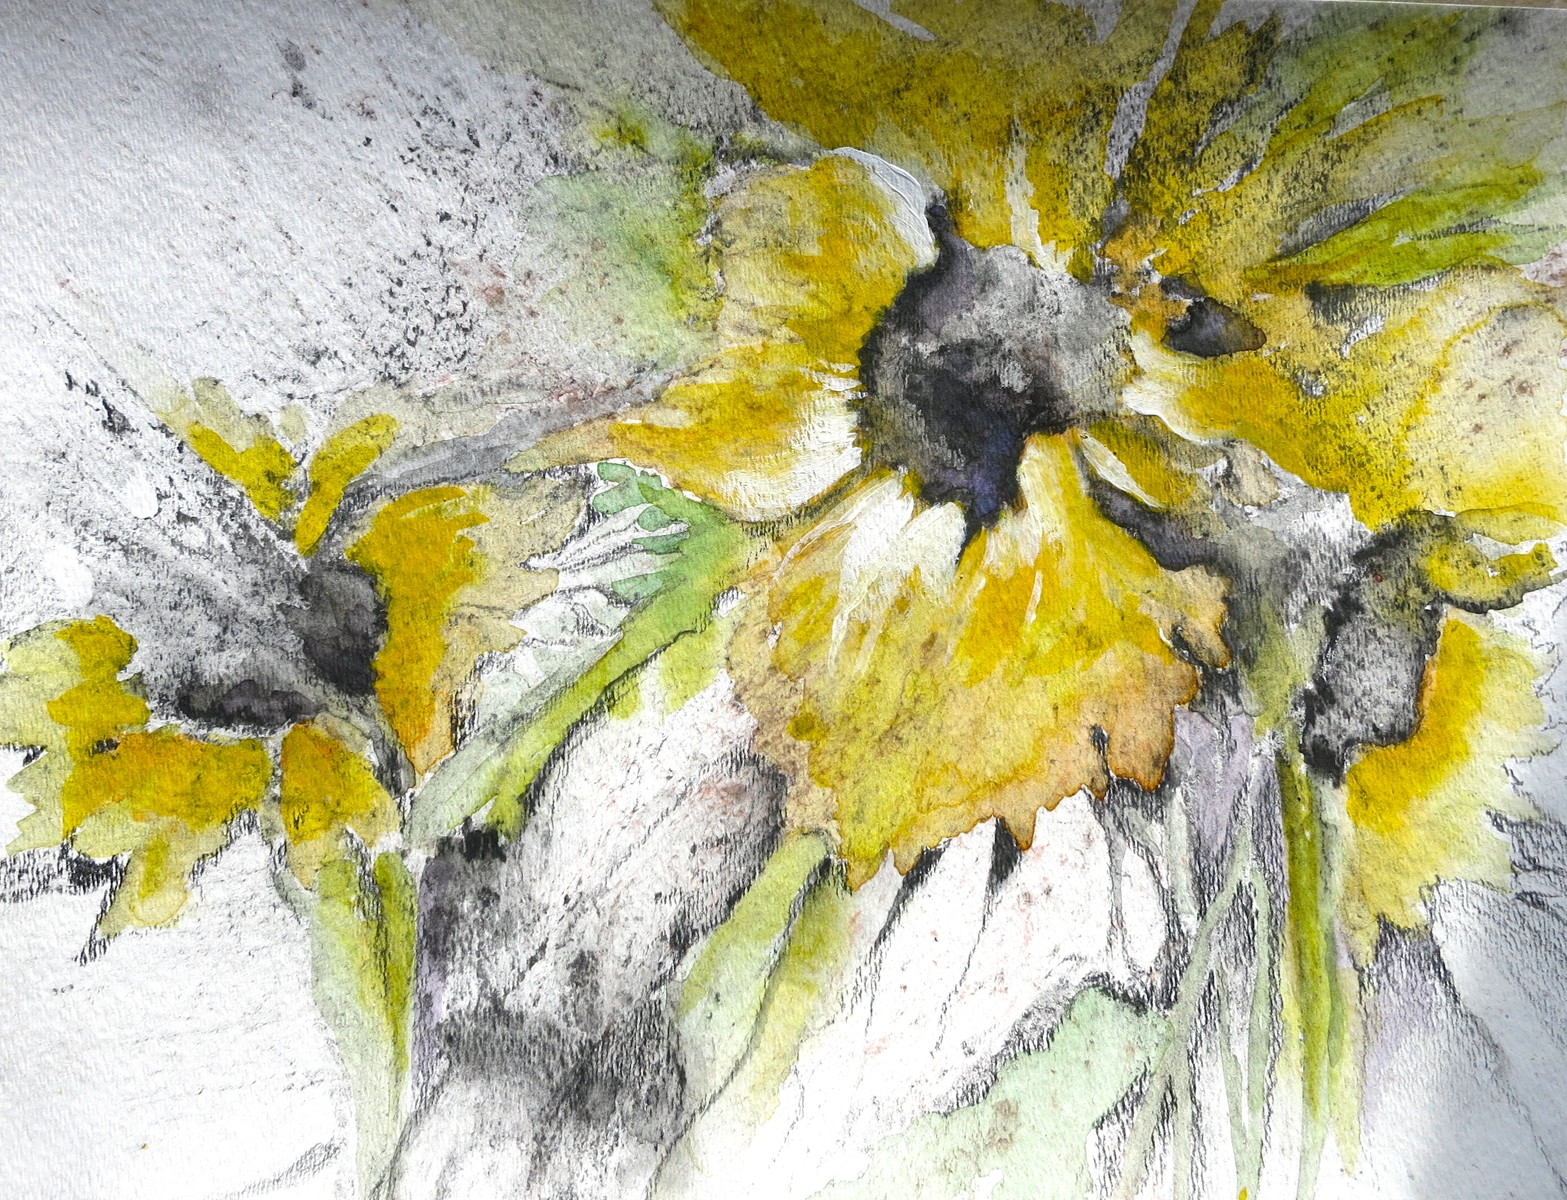 Sunflower in the wind Mixed media on paper 9 x 12 in